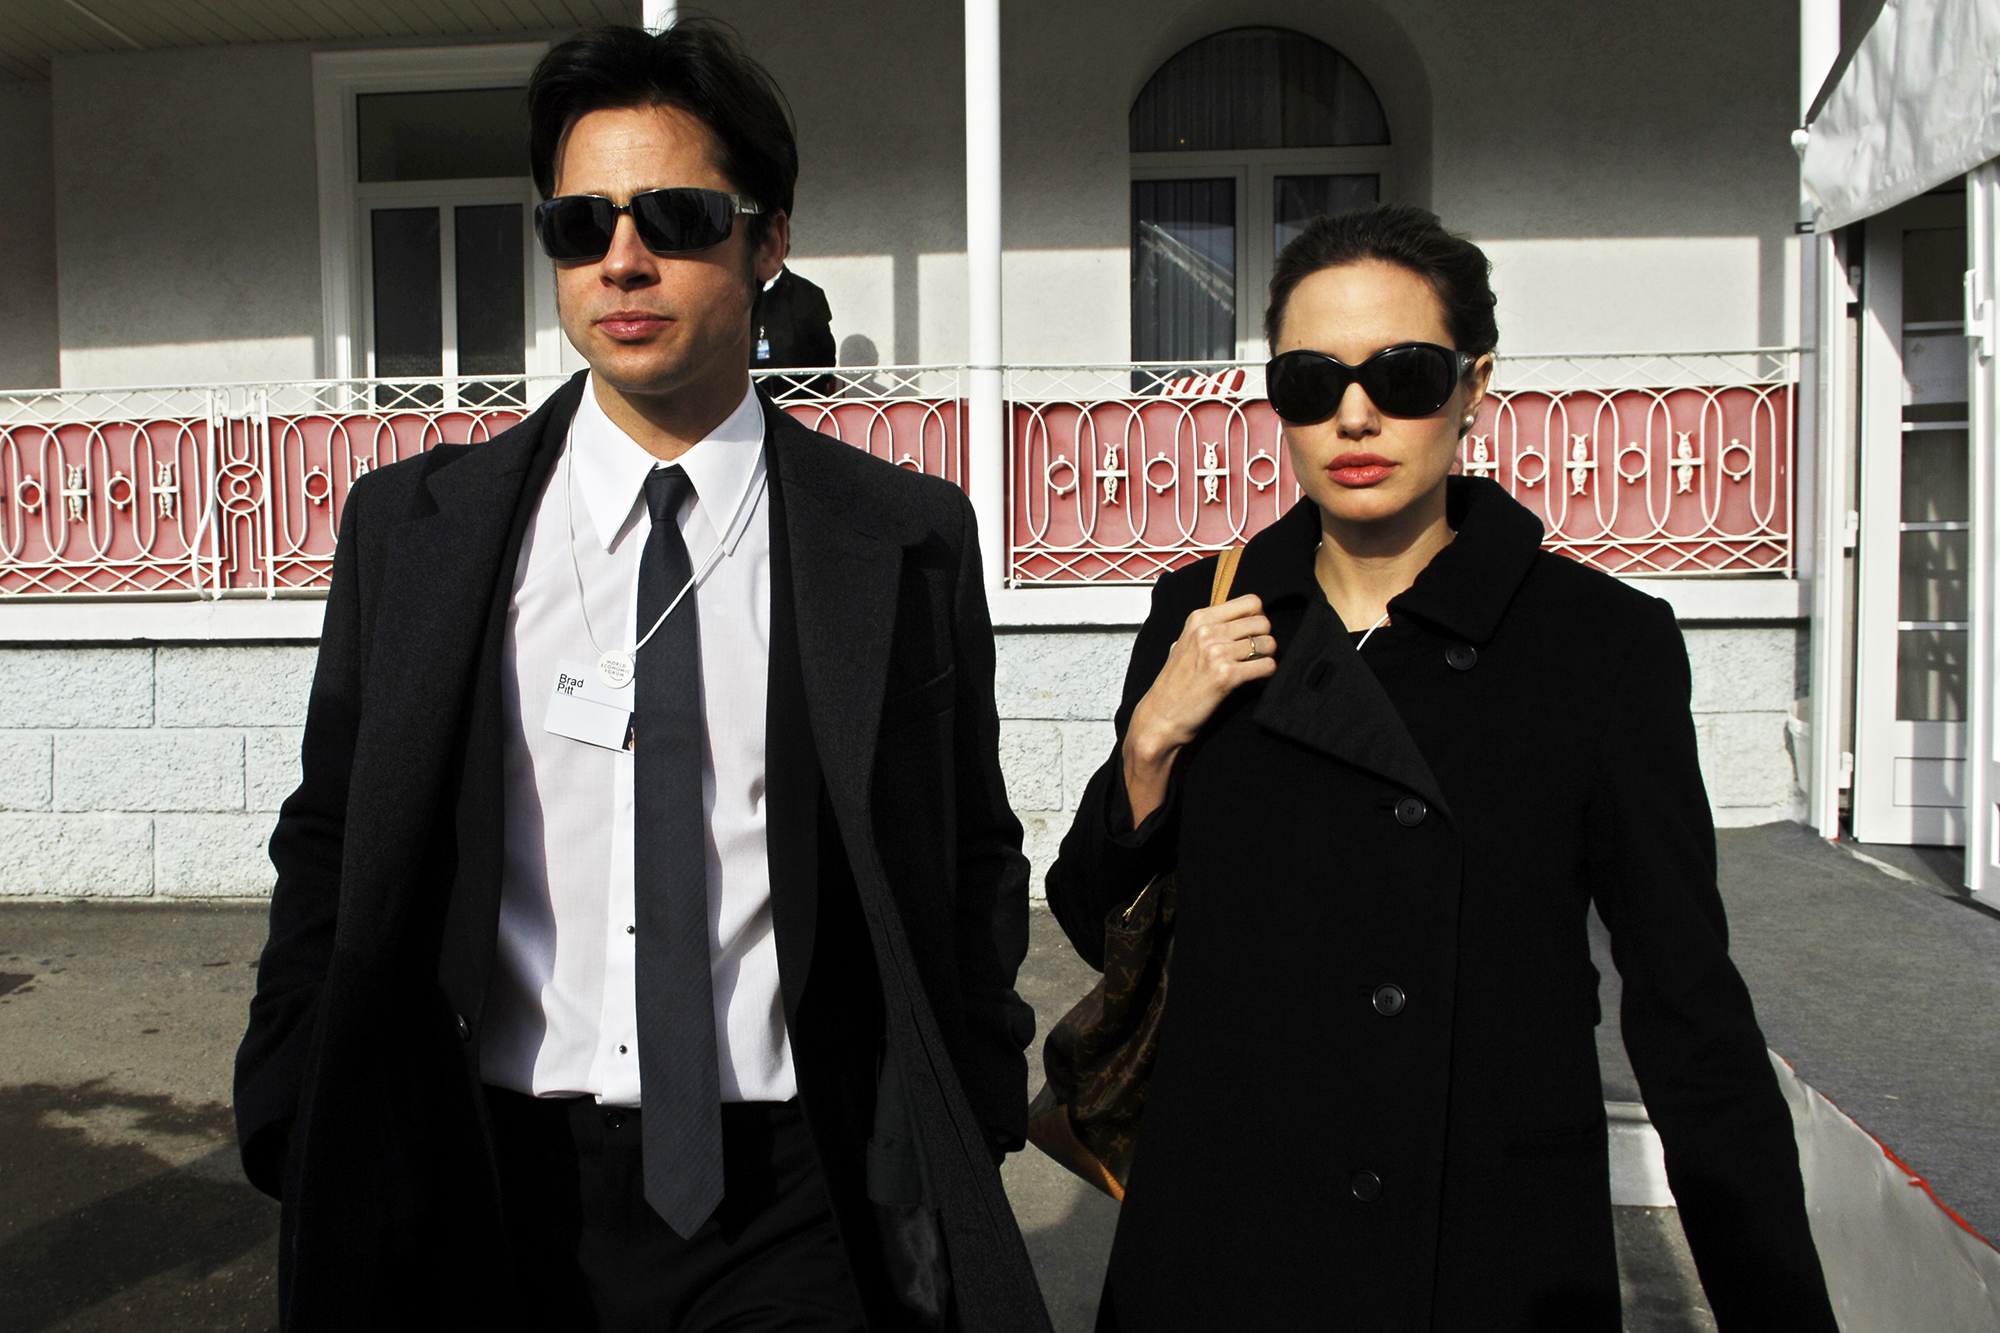 Brad Pitt and Angelina Jolie leave the Hotel Belvedere in Davos, on January 26, 2006.